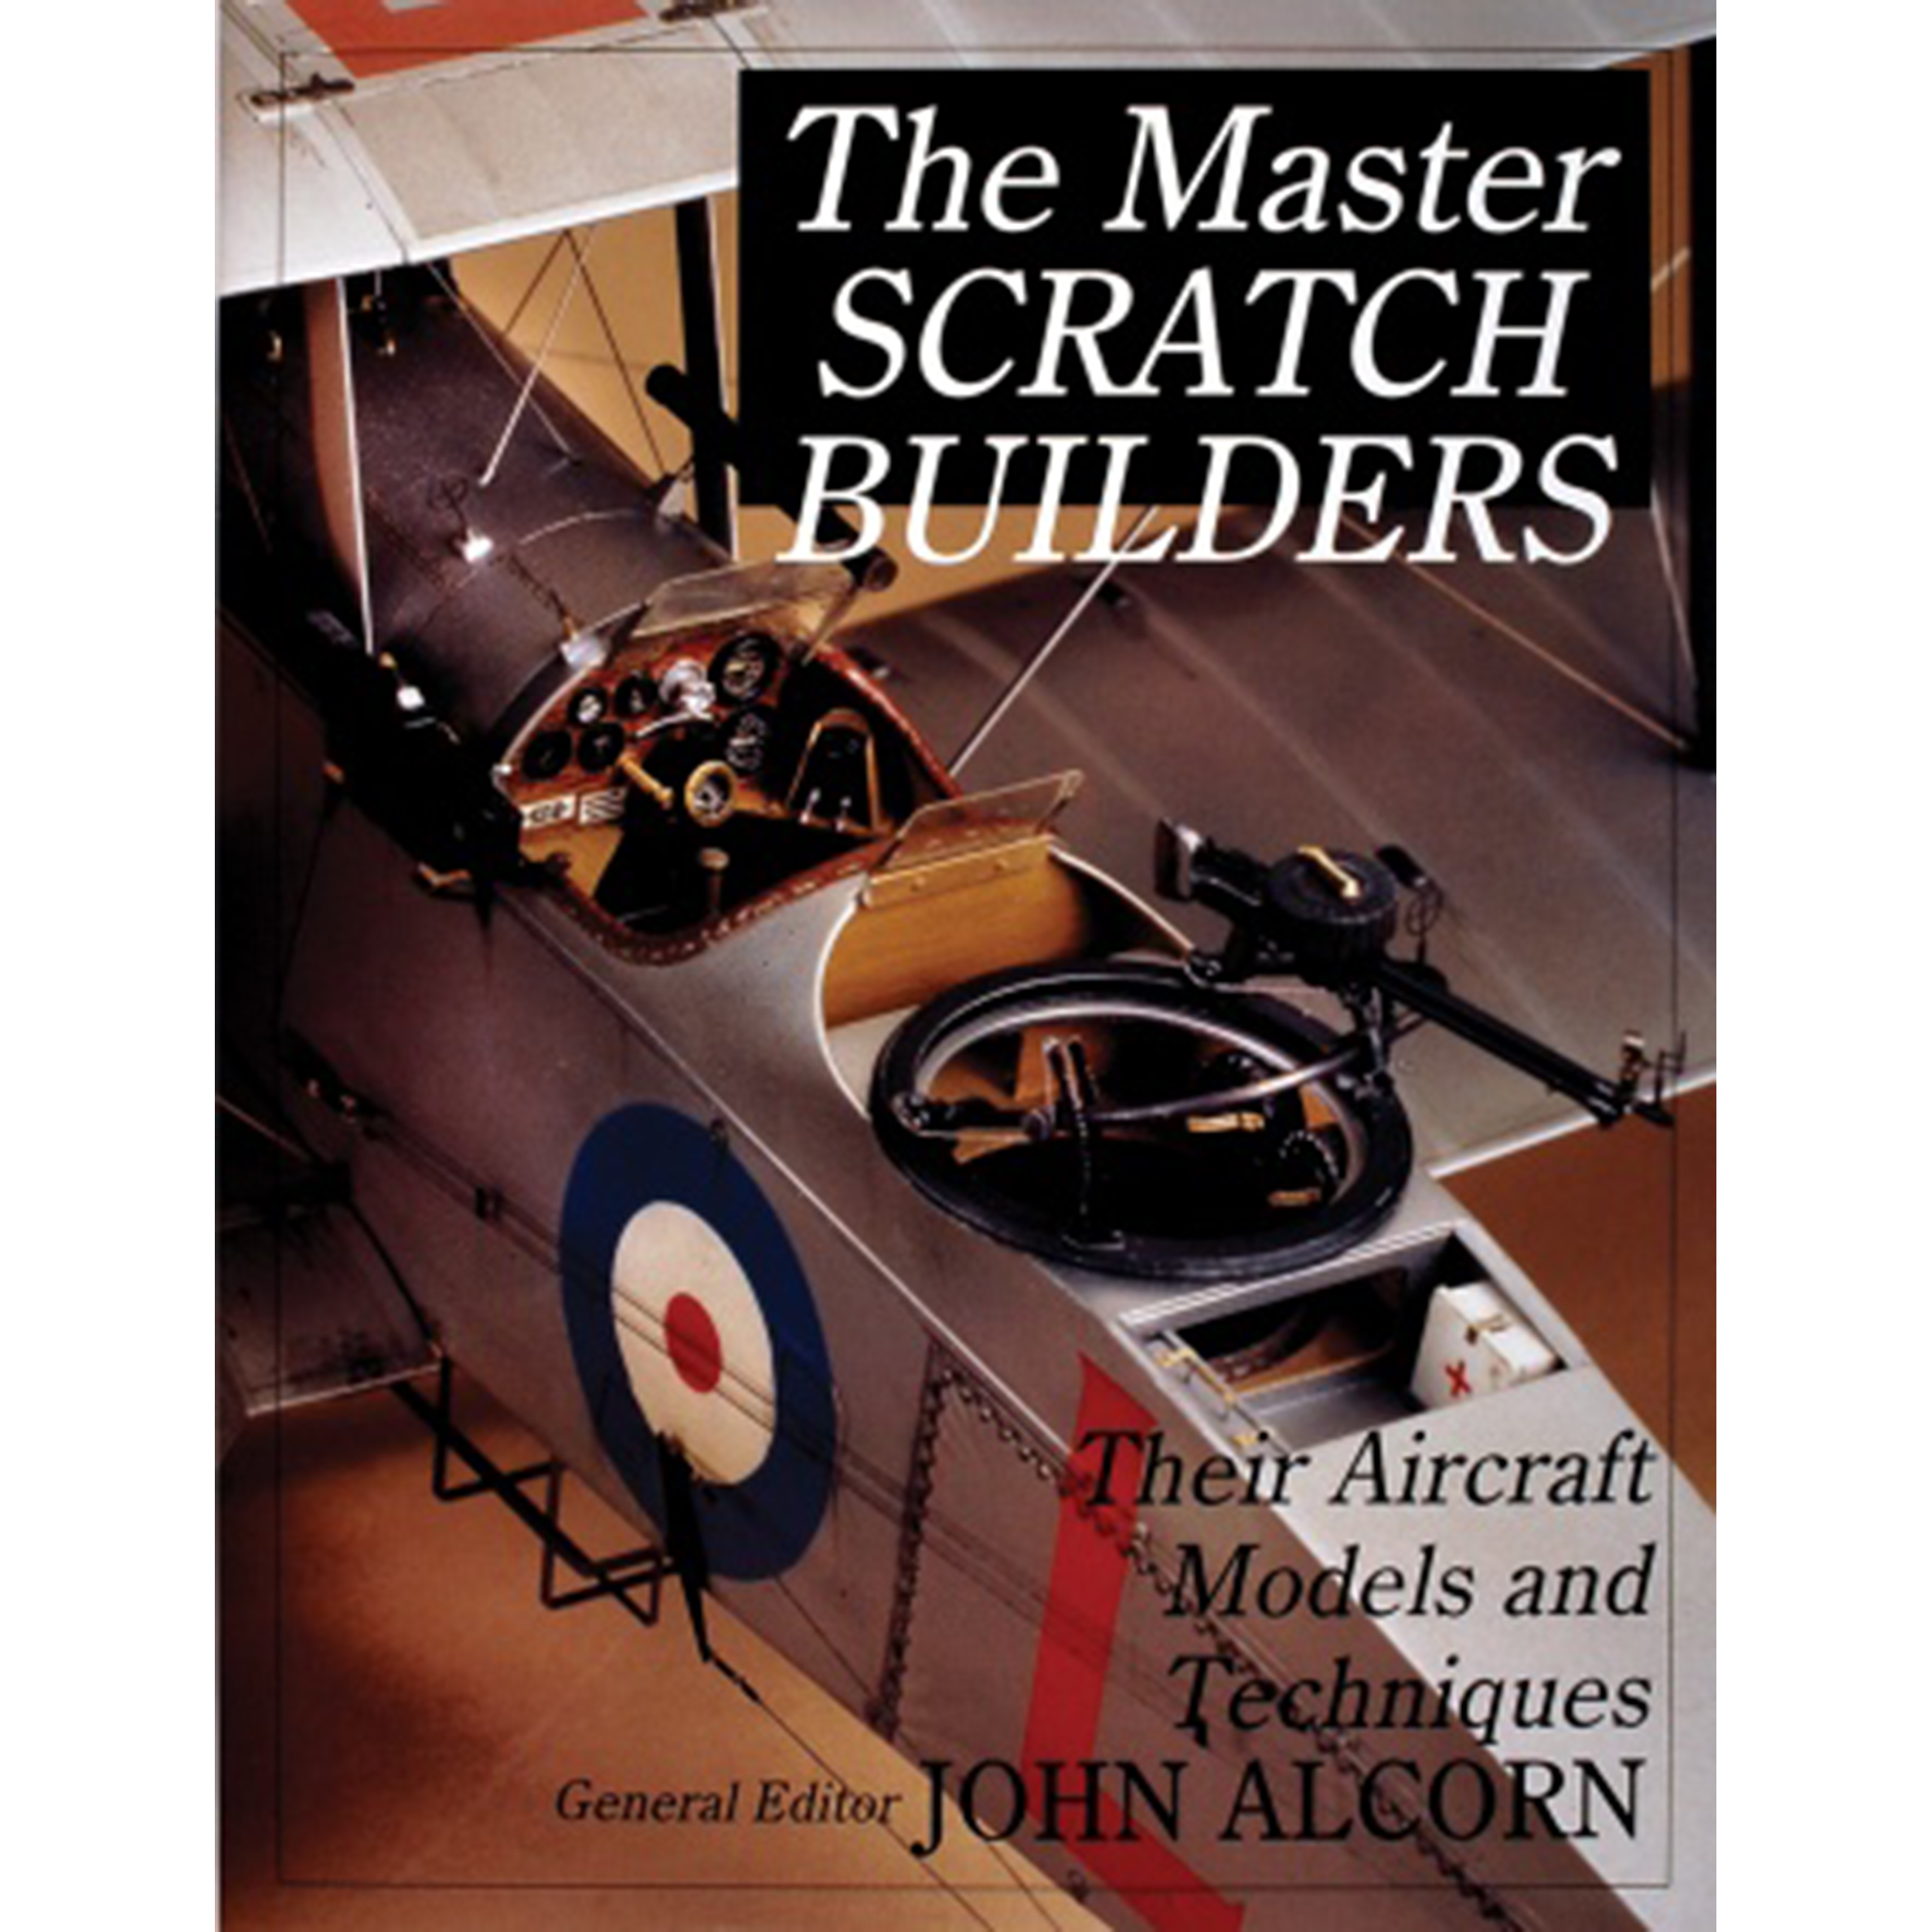 The Master Scratch Builders: Tips & Techniques from the Masters